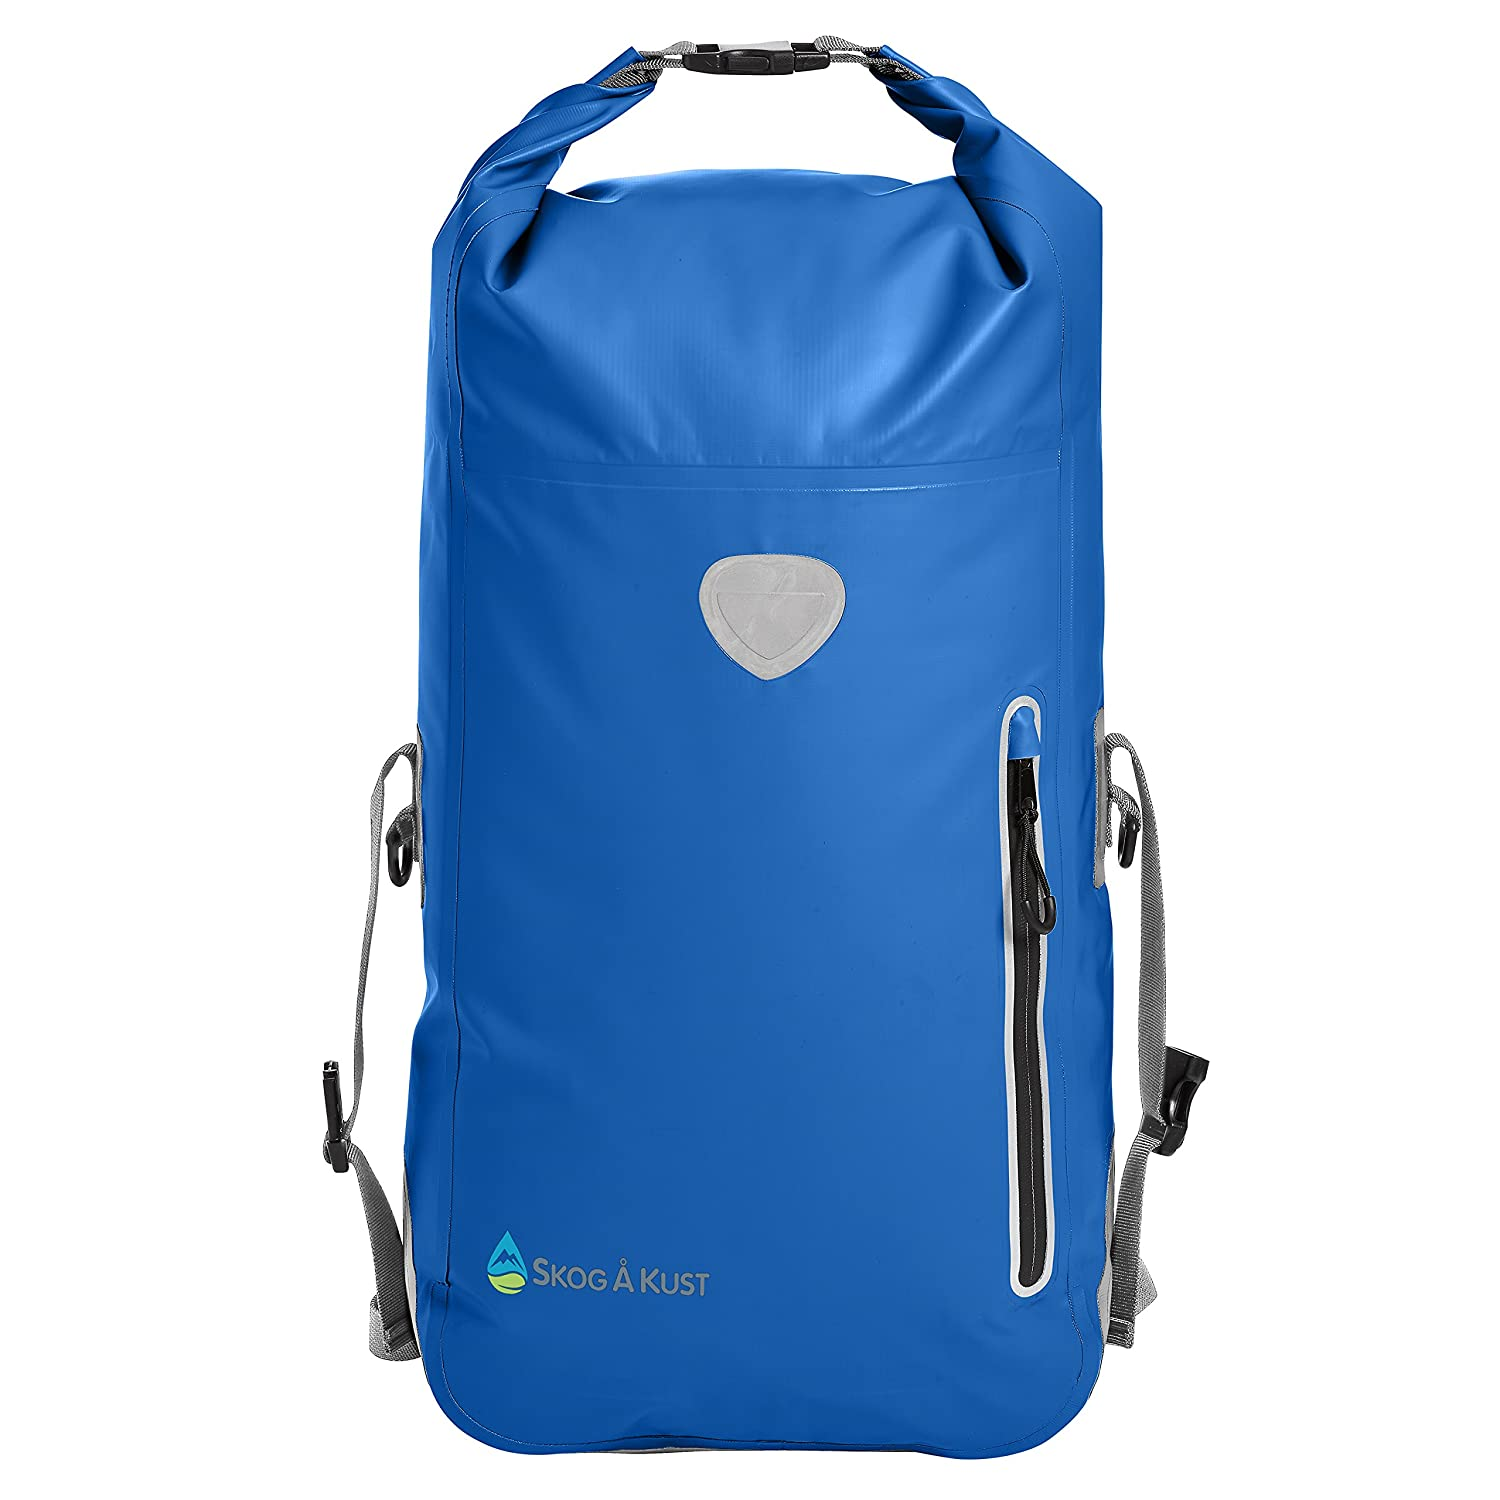 BackSak Waterproof Backpack Review